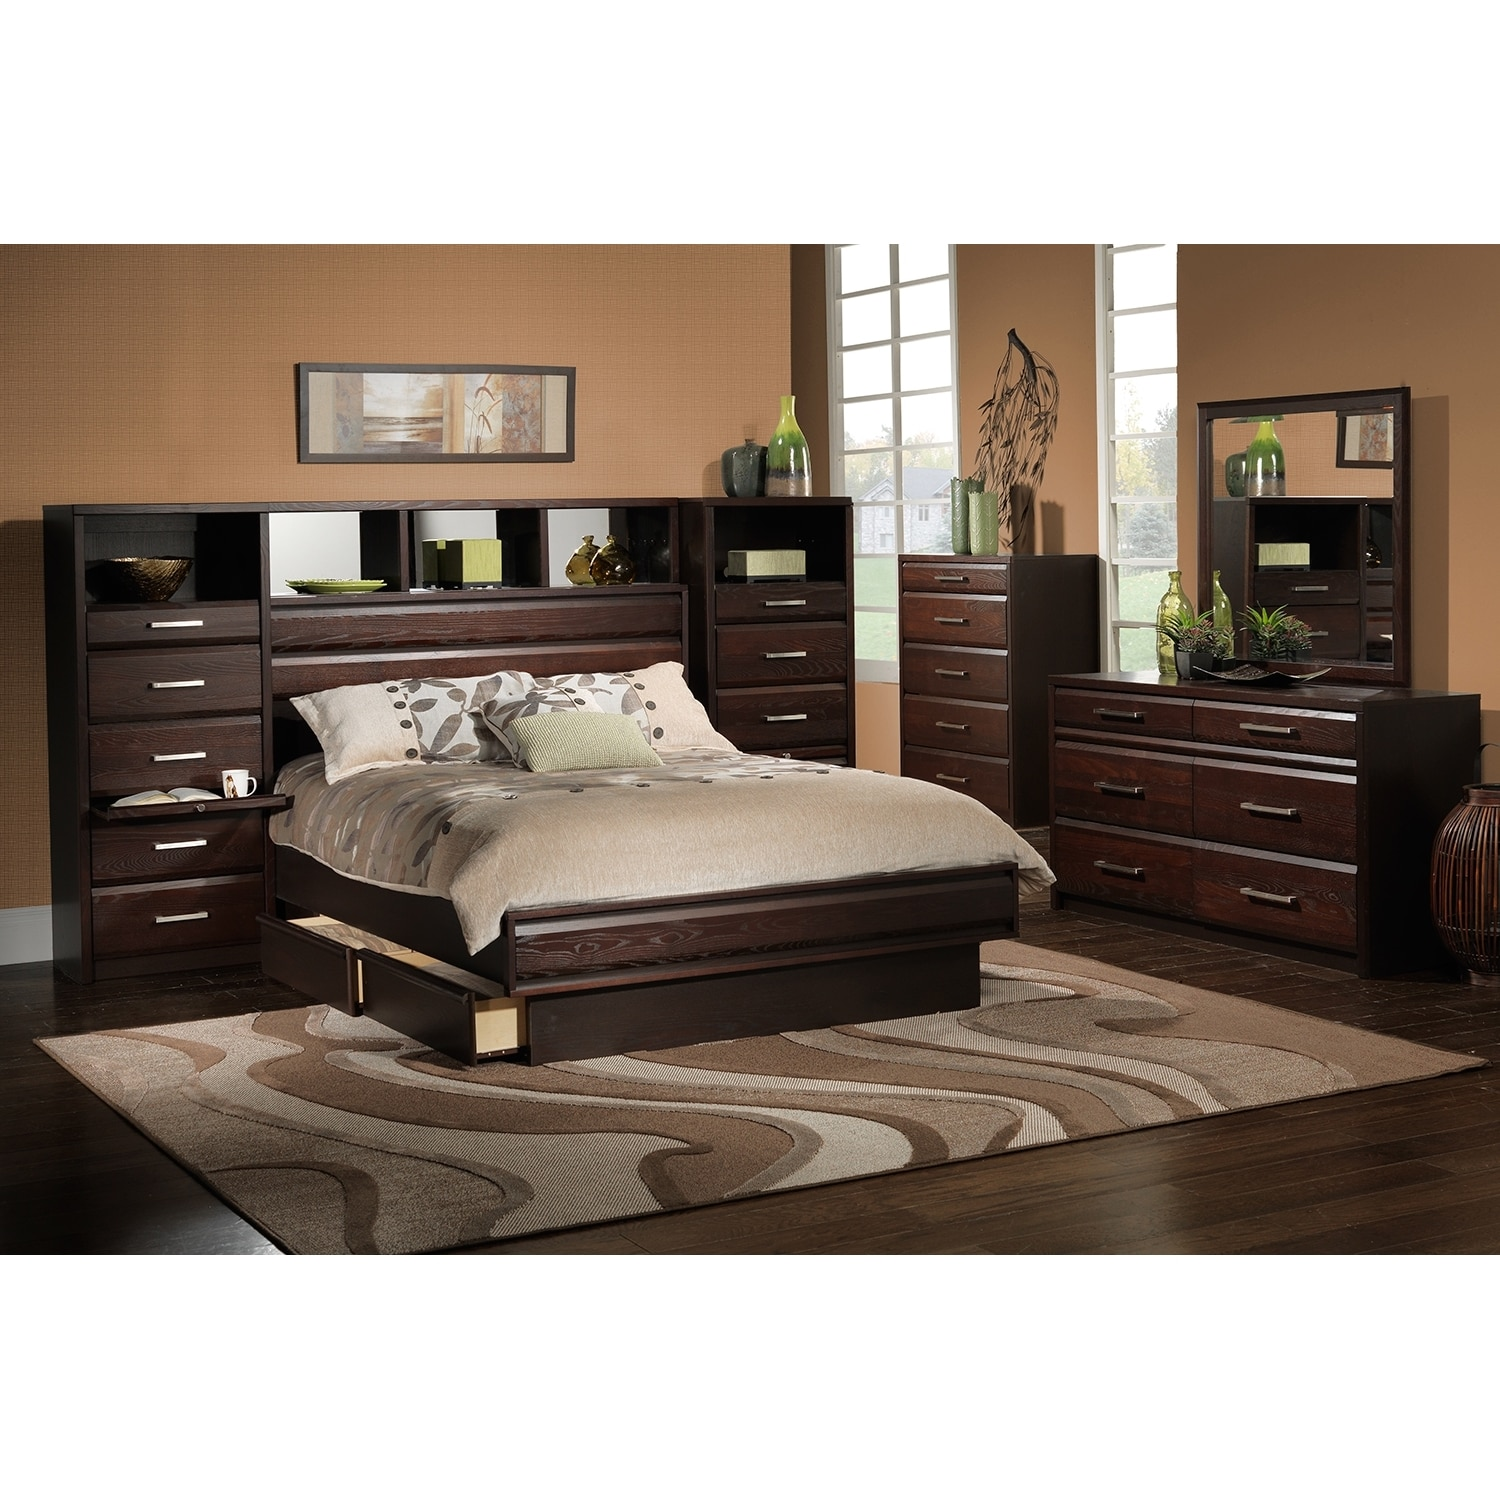 King Wall Bed 28 Images Value City Furniture Harden Artistry King Wall Bed Coming Soon Www